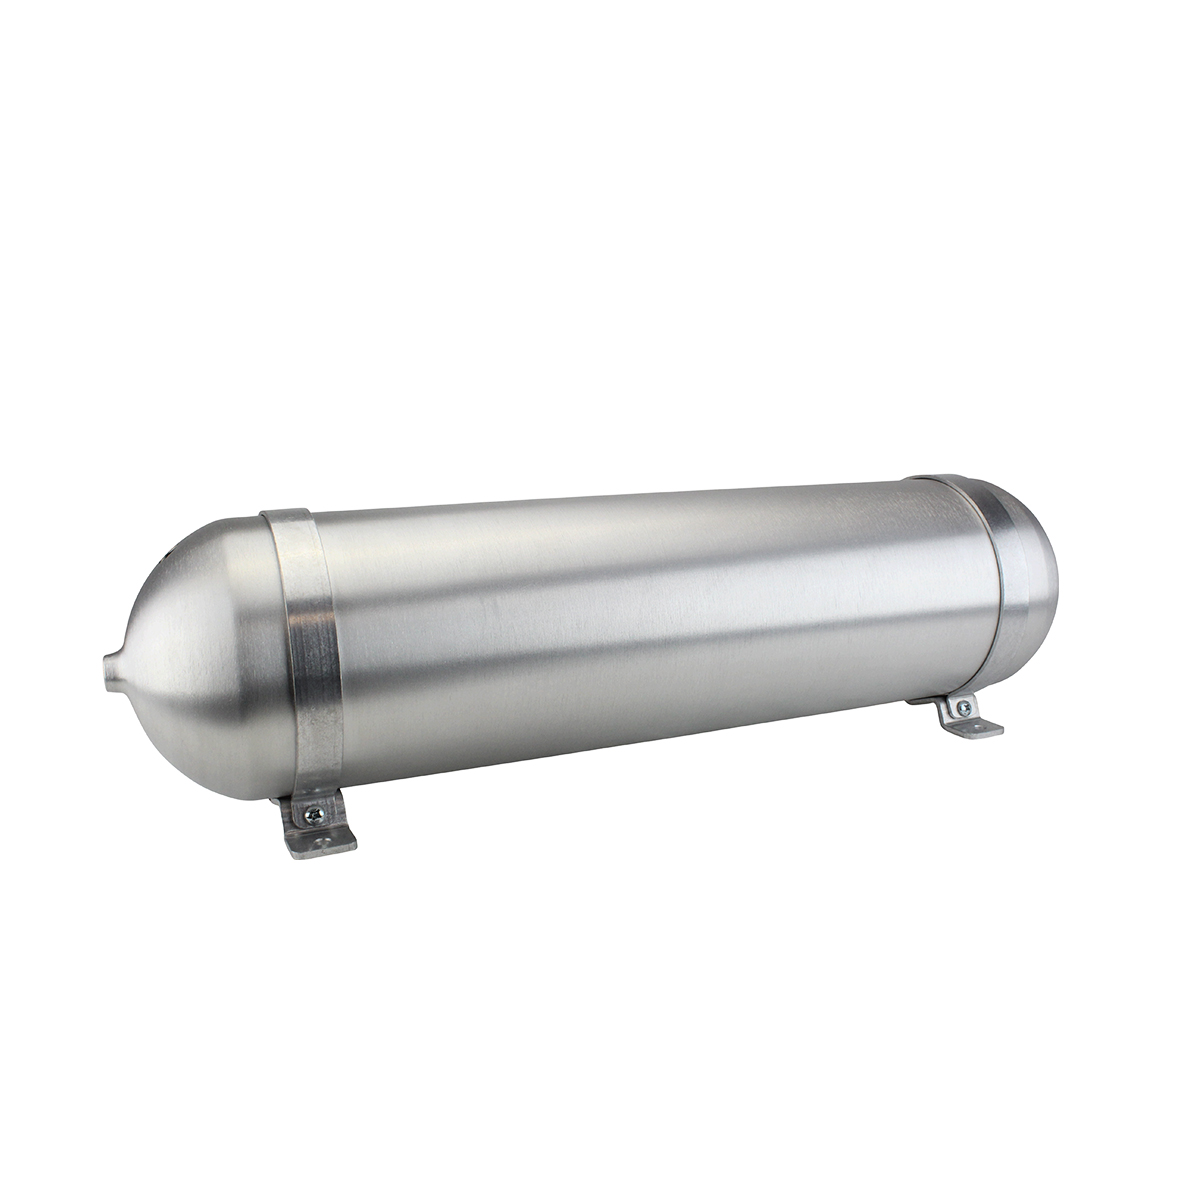 "SA628025-01 Seamless Tanks Aluminum Air Tank 28"" Length 6.625"" Diameter, (5) 1/4"" Ports, 200psi Rated, 3.44 Gallons"